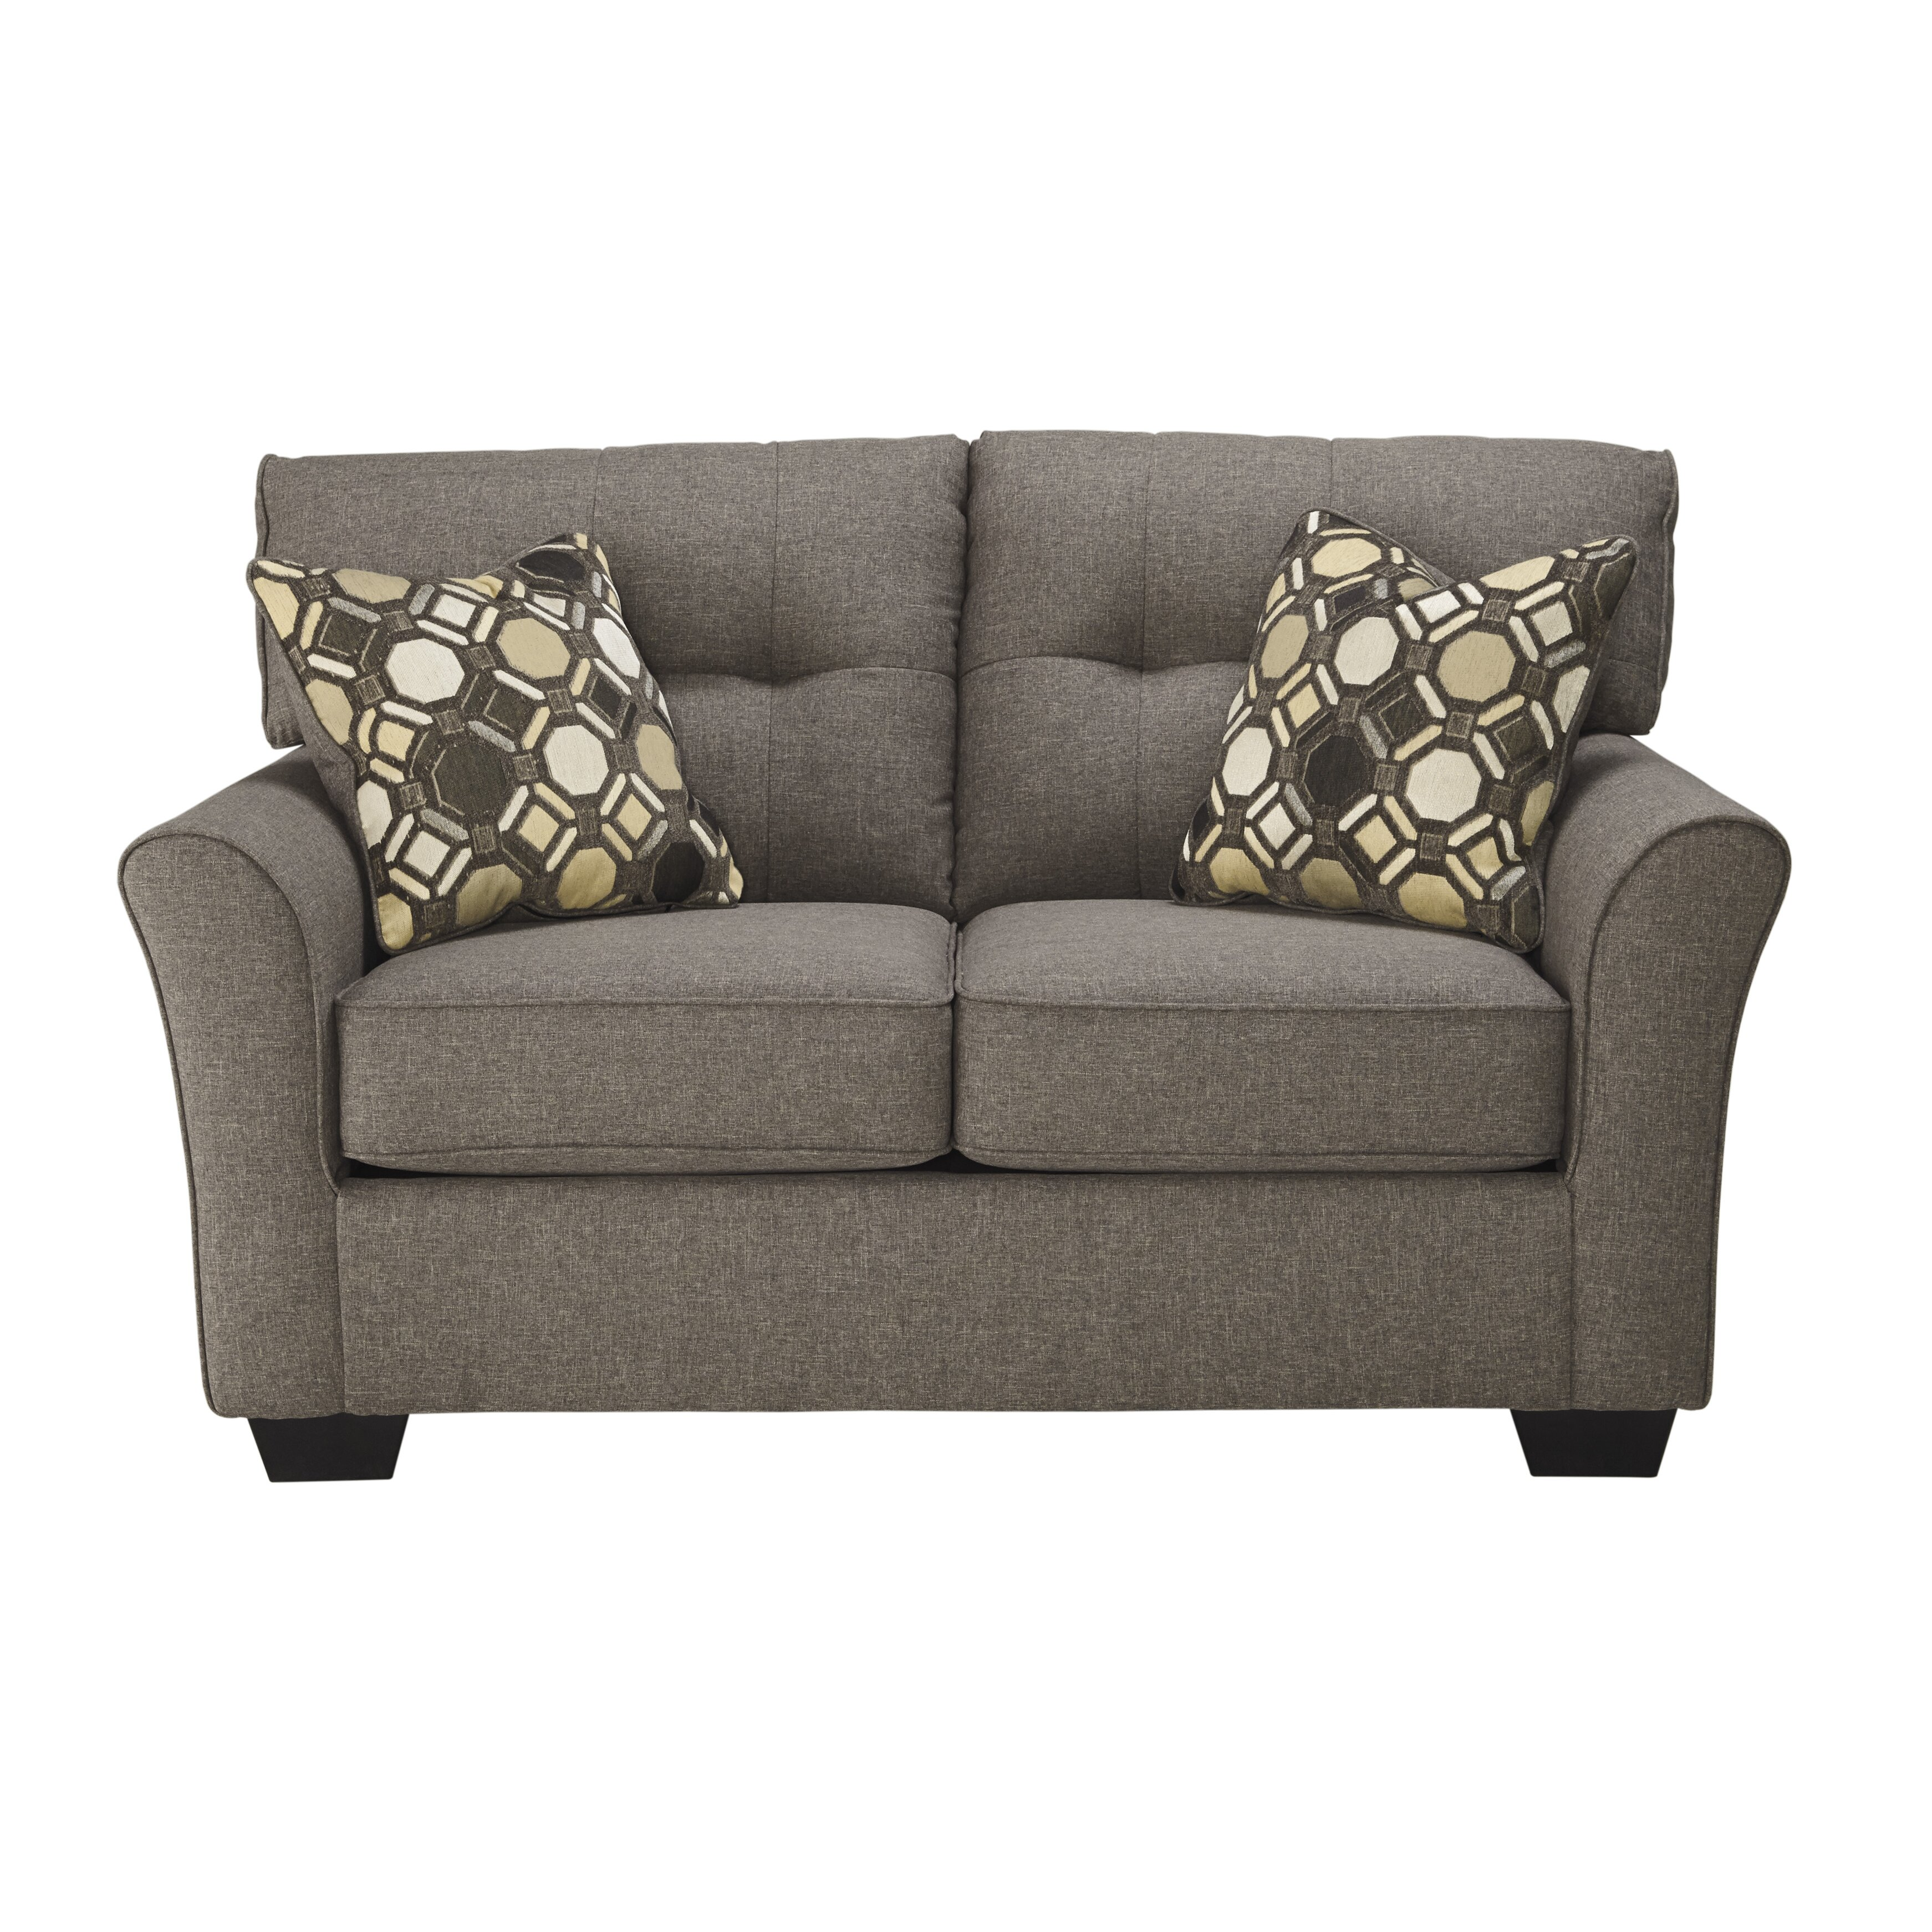 Signature Design By Ashley Tibbee Loveseat & Reviews